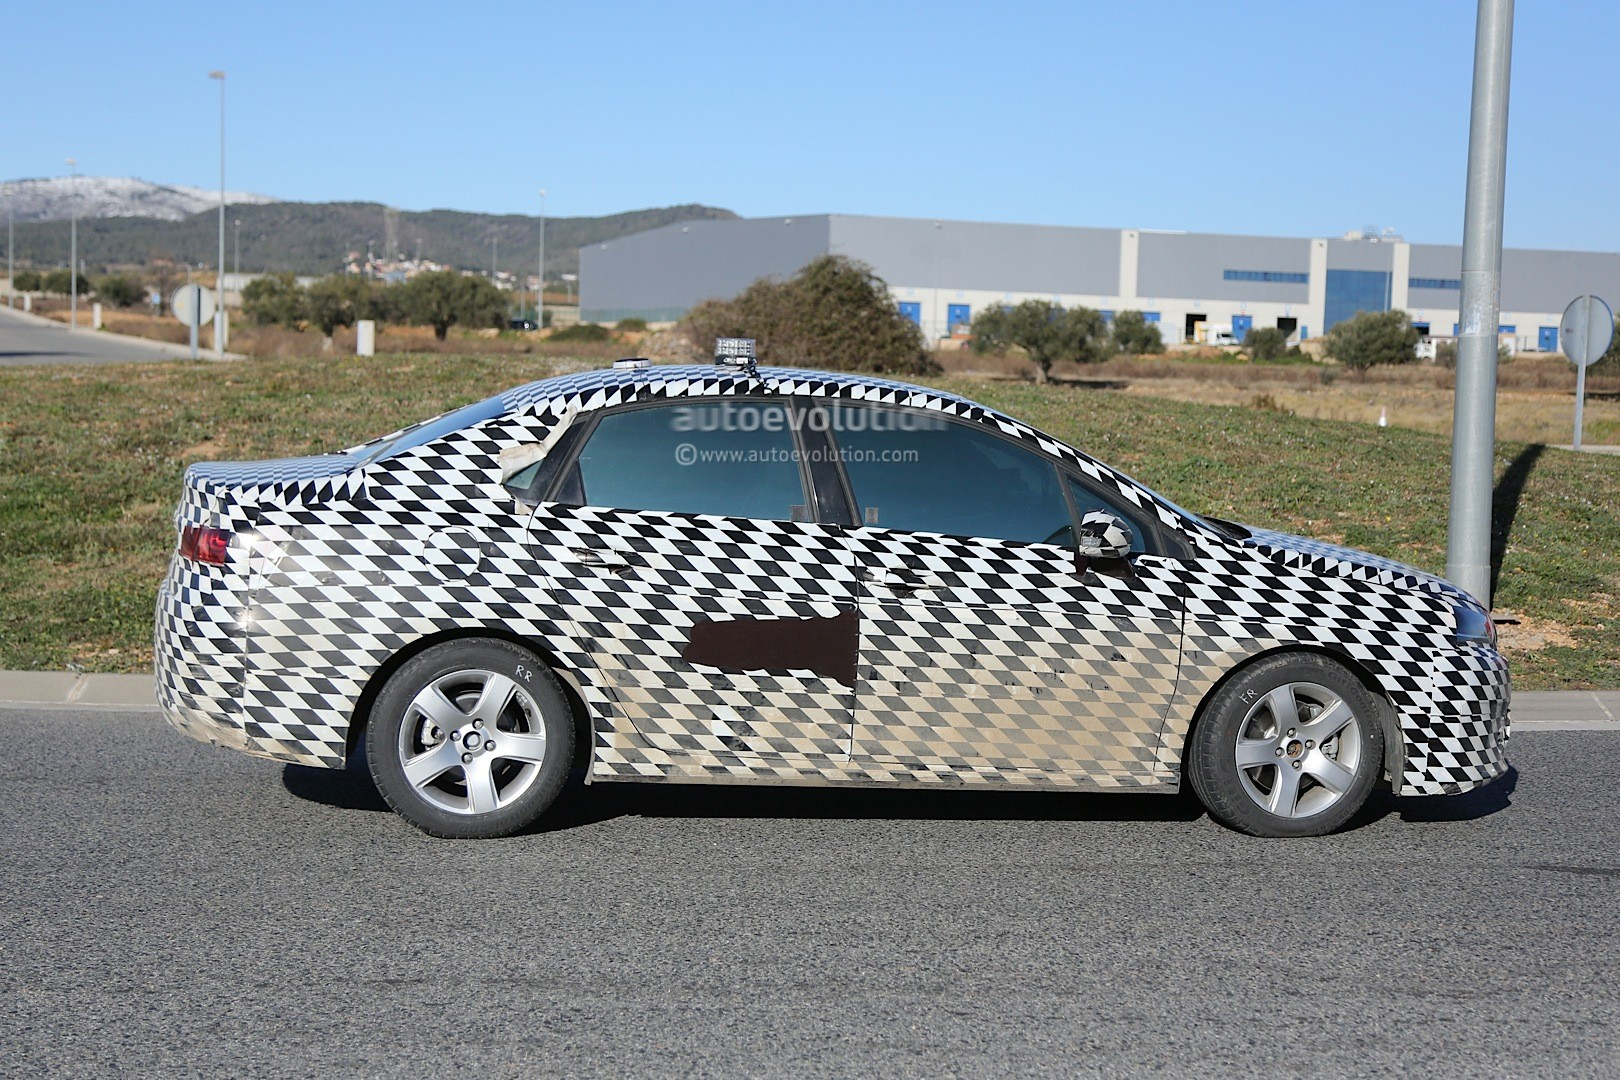 2015 - [Citroën] C4 C-Quatre - Page 2 Mystery-citroen-compact-sedan-spied-testing-in-spain-could-be-the-new-c4-lunge_5